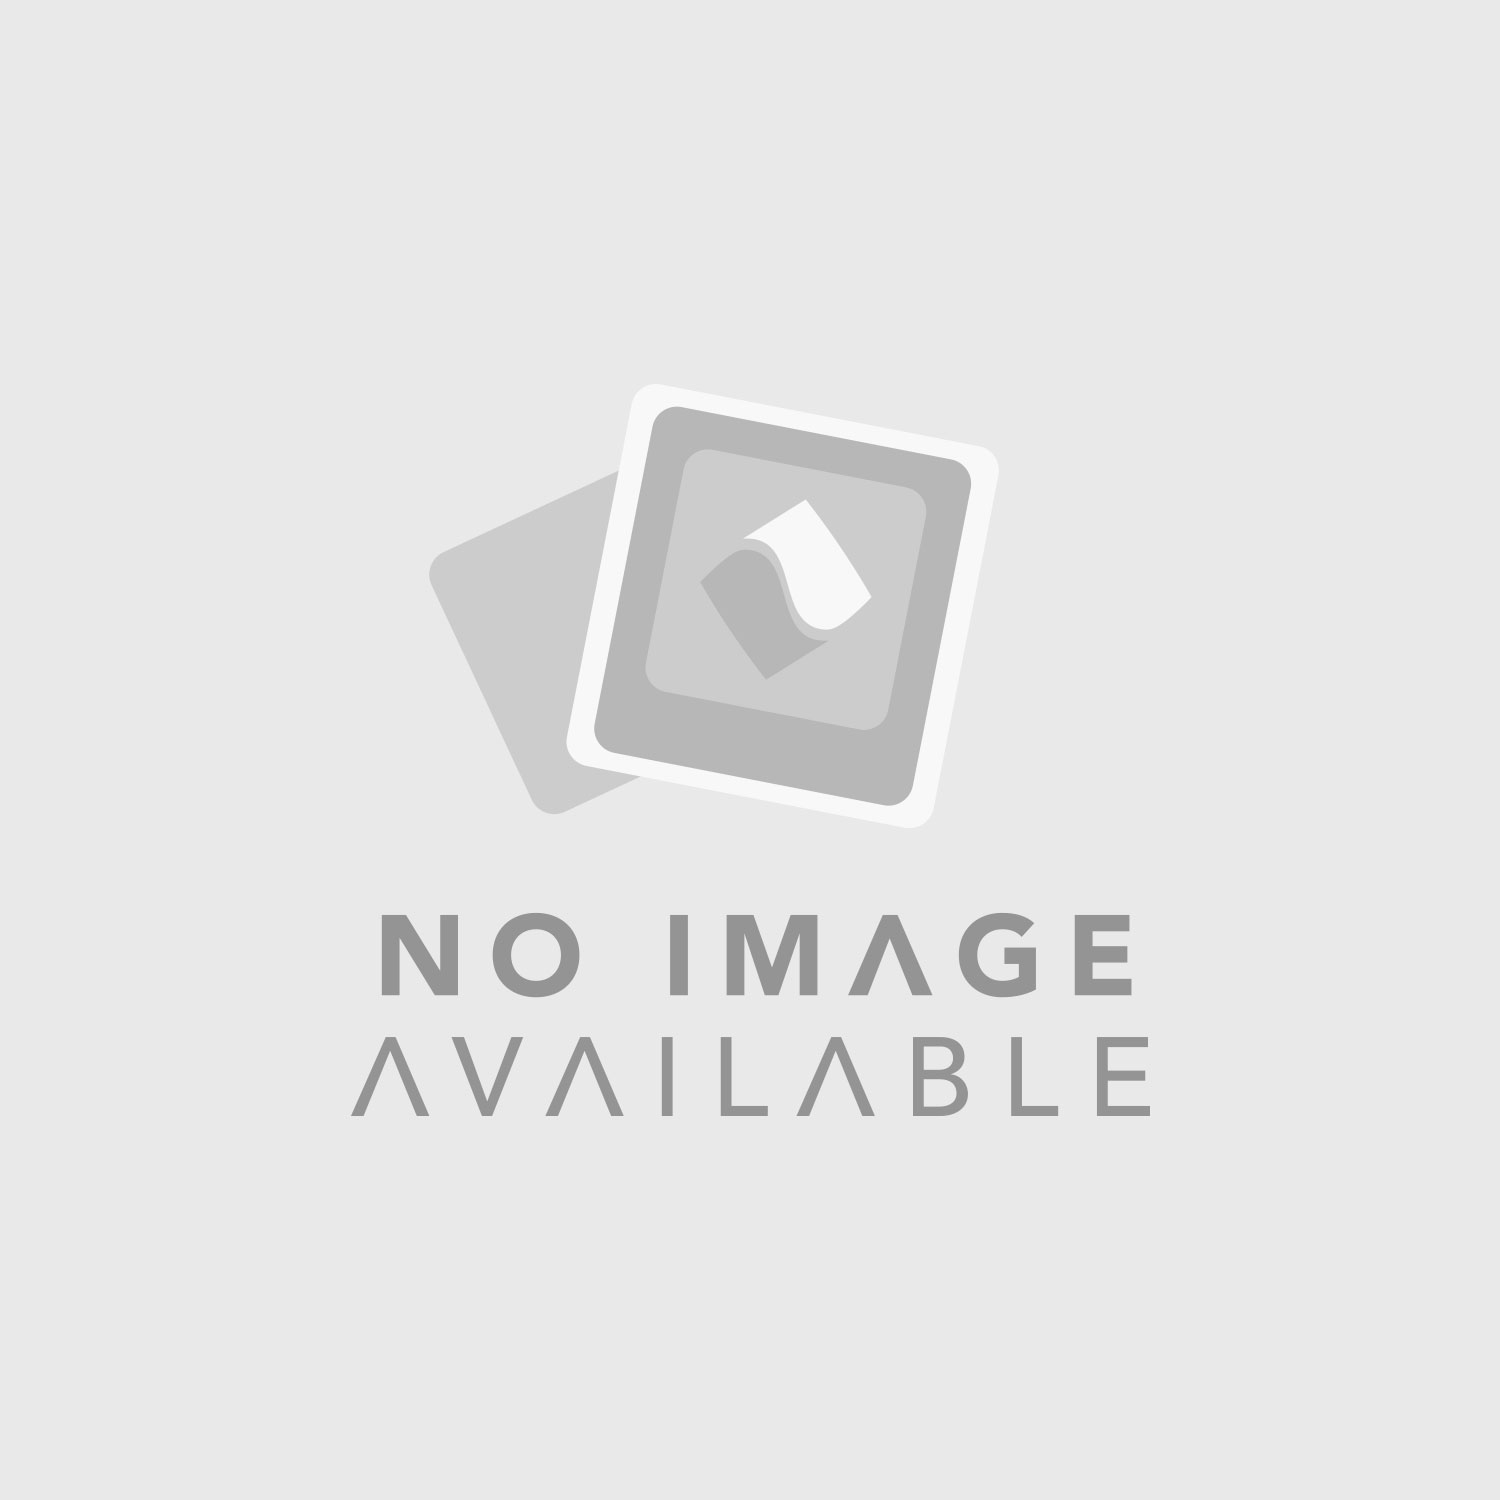 Pro Intercom AD913 Transceiver Adapter